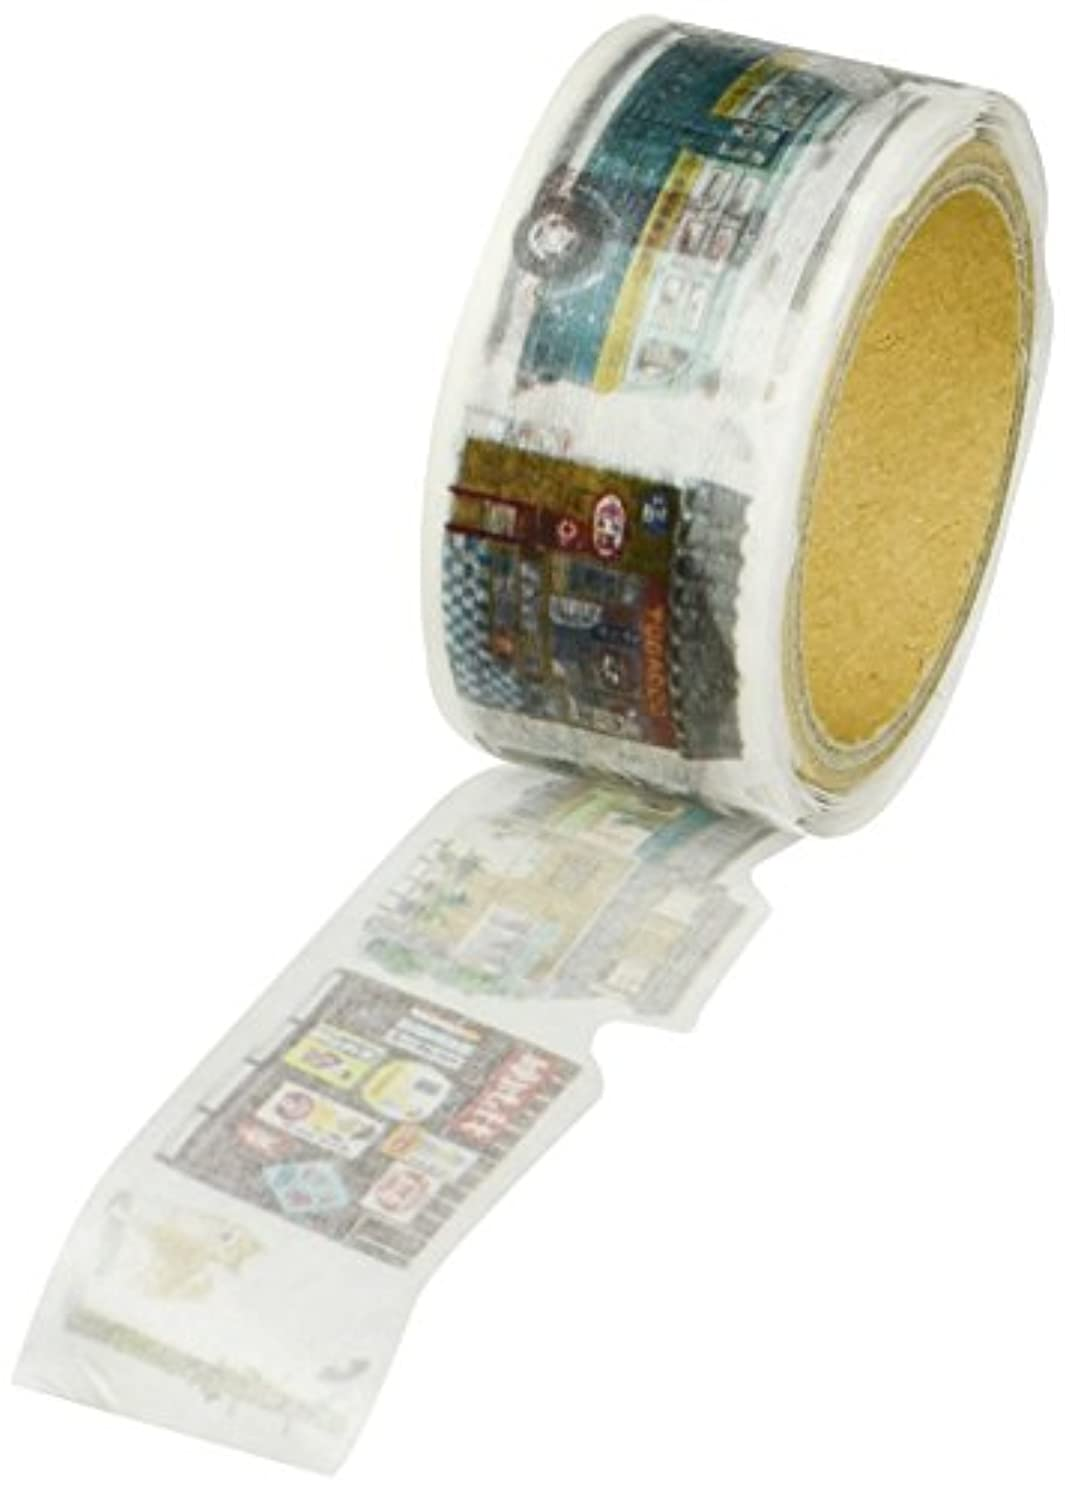 Roundtop Designer's Washi Masking Tape 20mm x 5m, Yano Design Trip & Holiday, Showa (YD-MK-063)